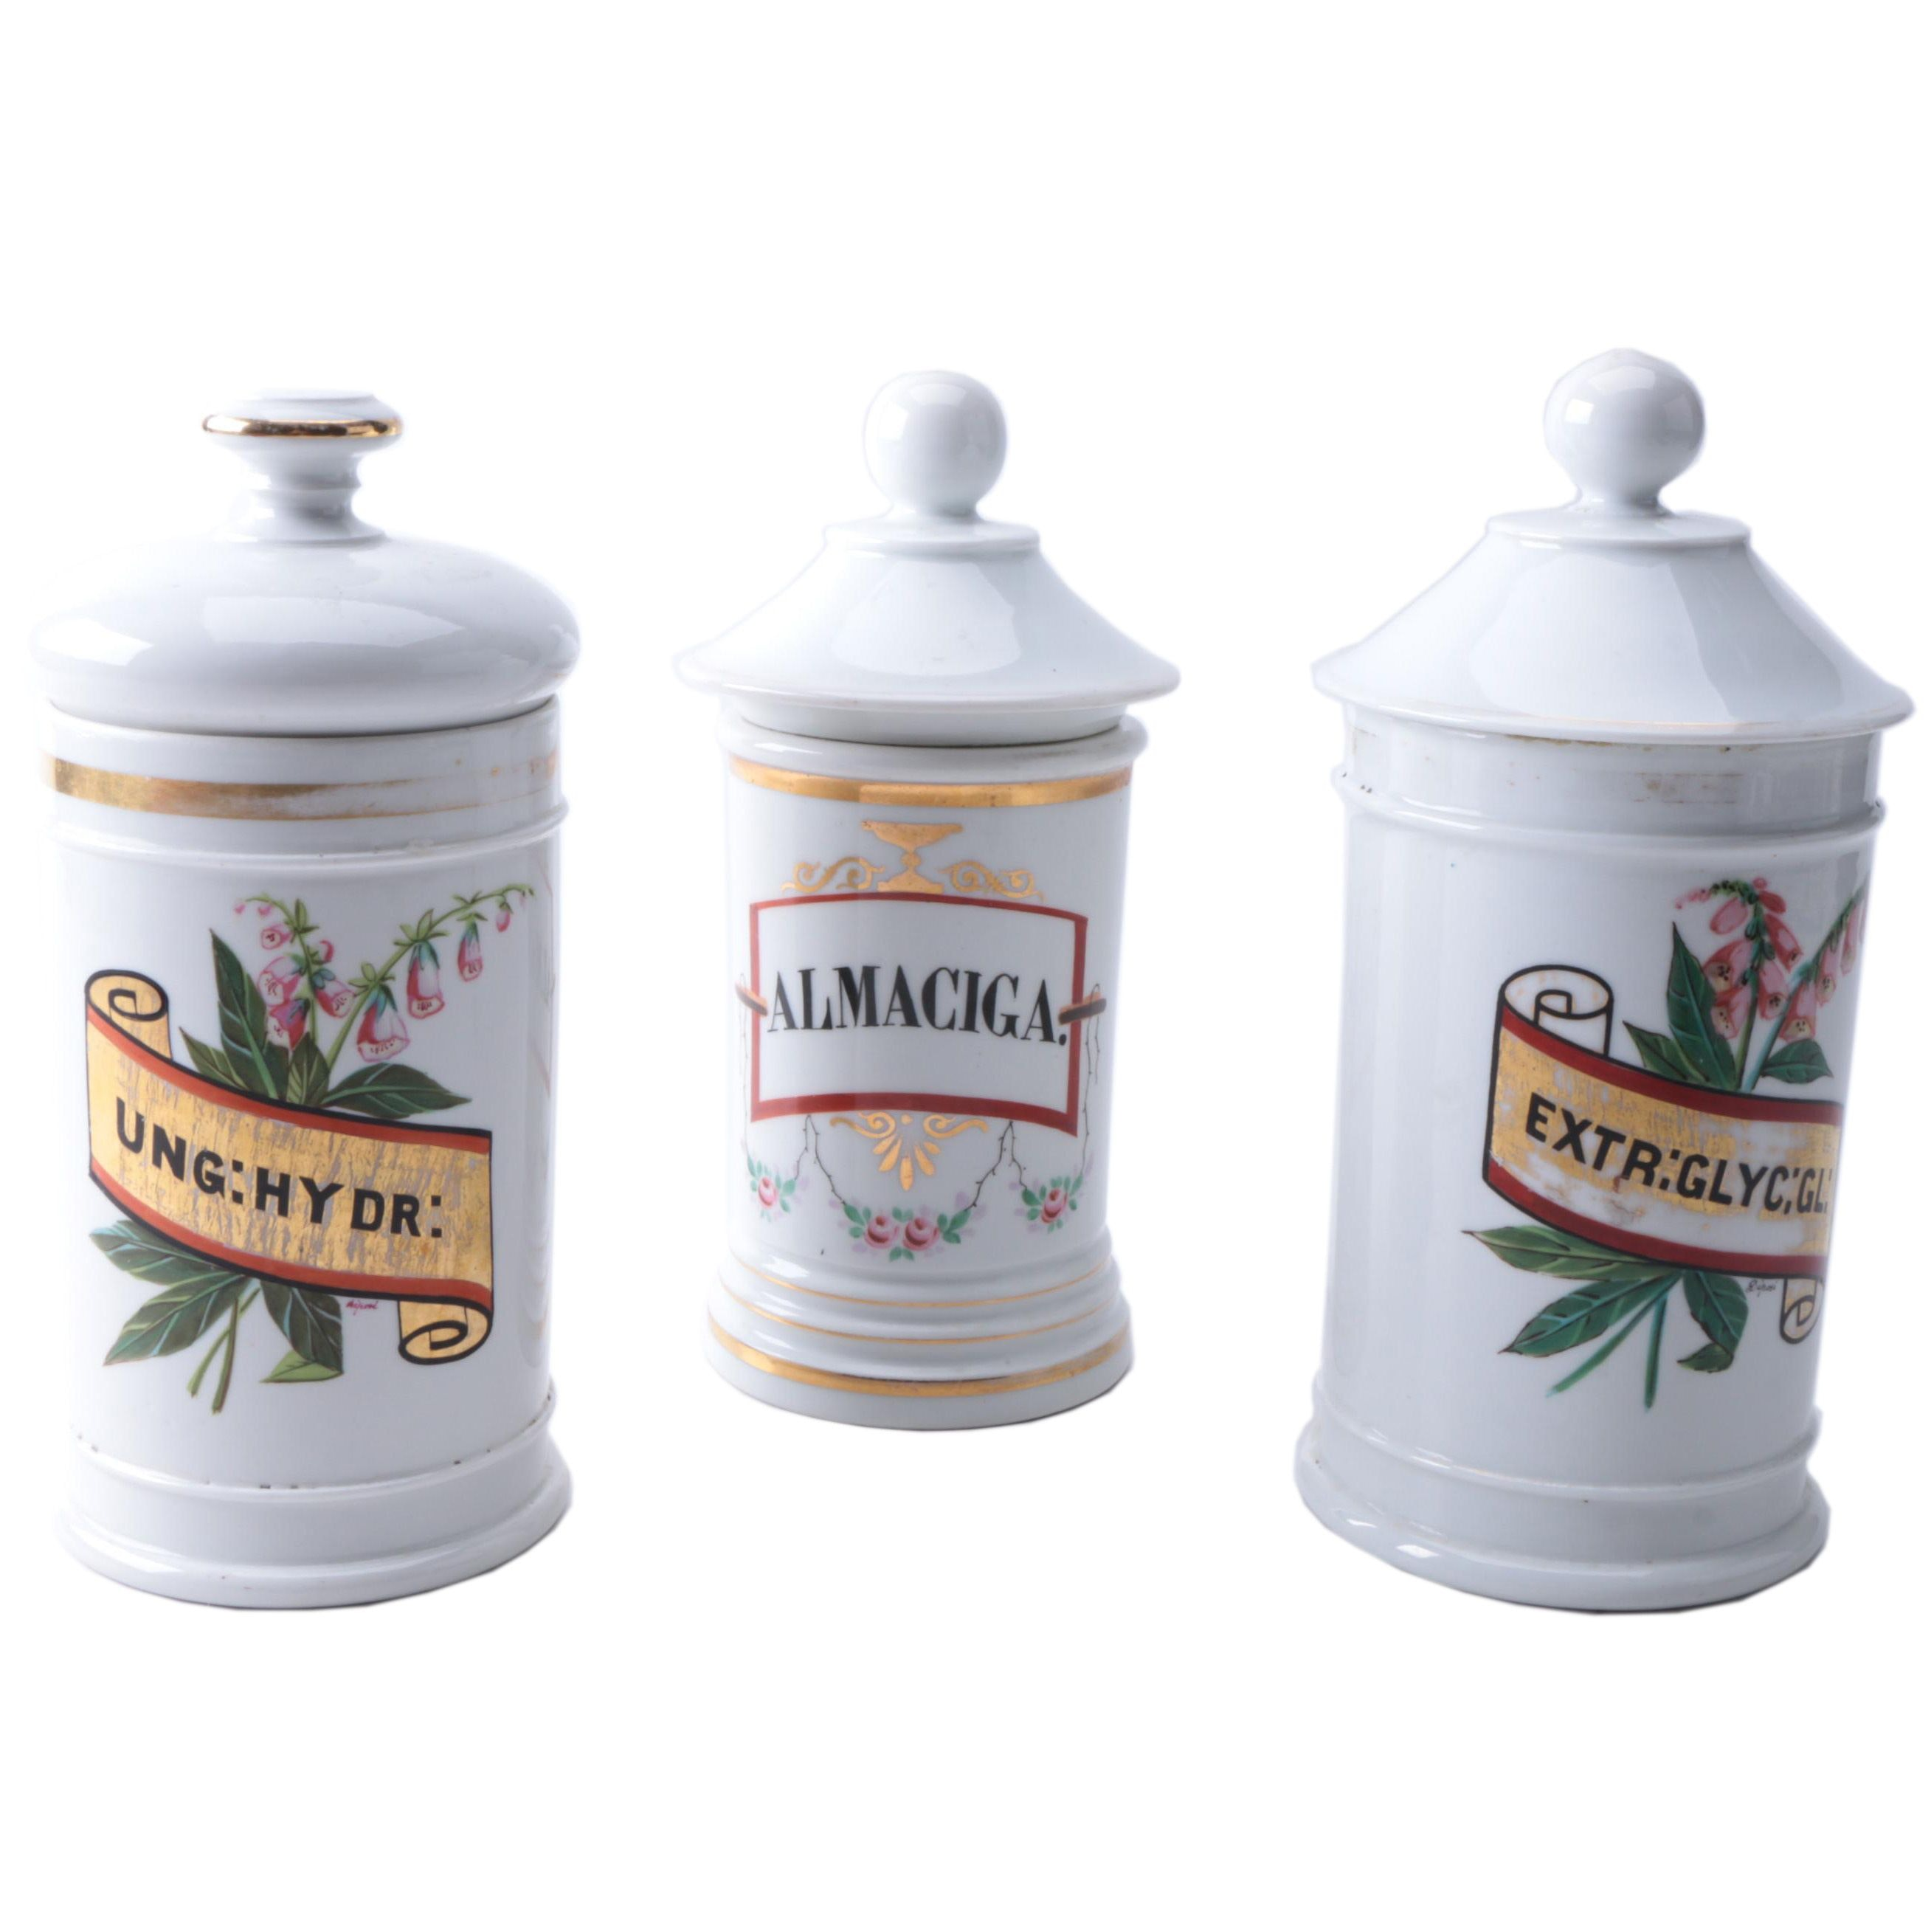 Vintage French Hand-Painted Apothecary Jars